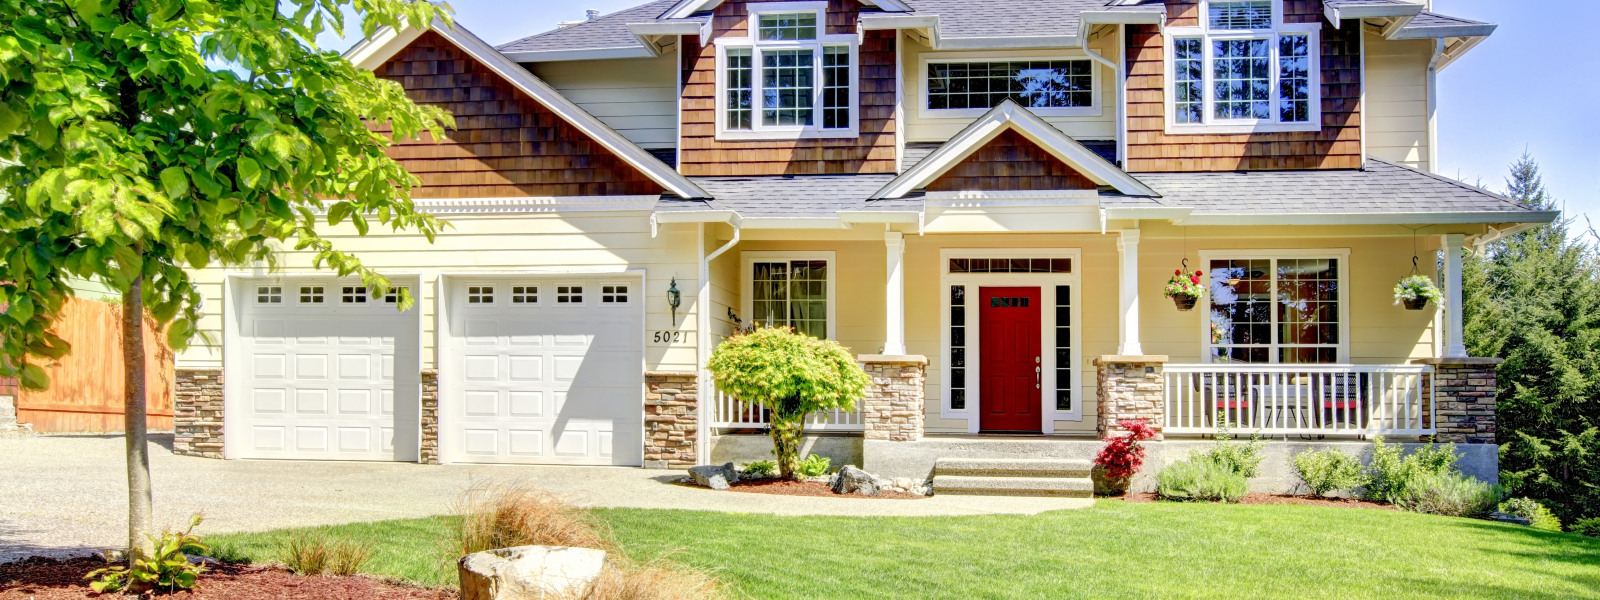 Home Warranty Benefits for Sellers